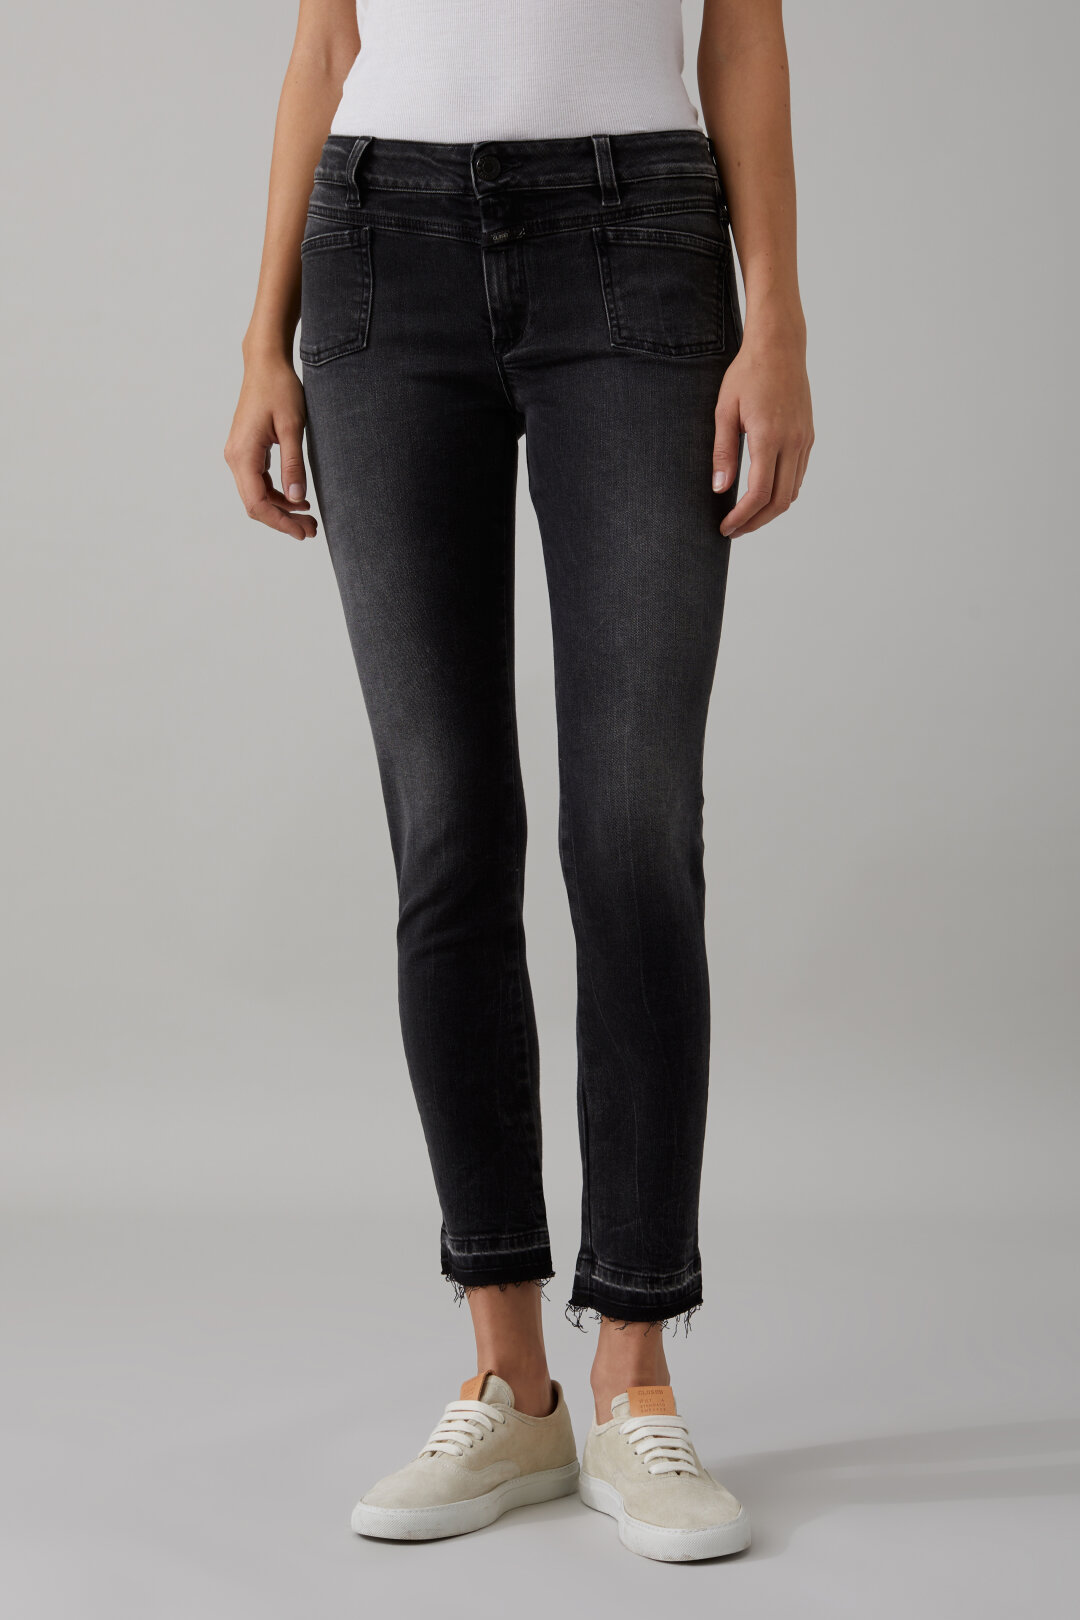 Pedal-X Black Stretch Denim